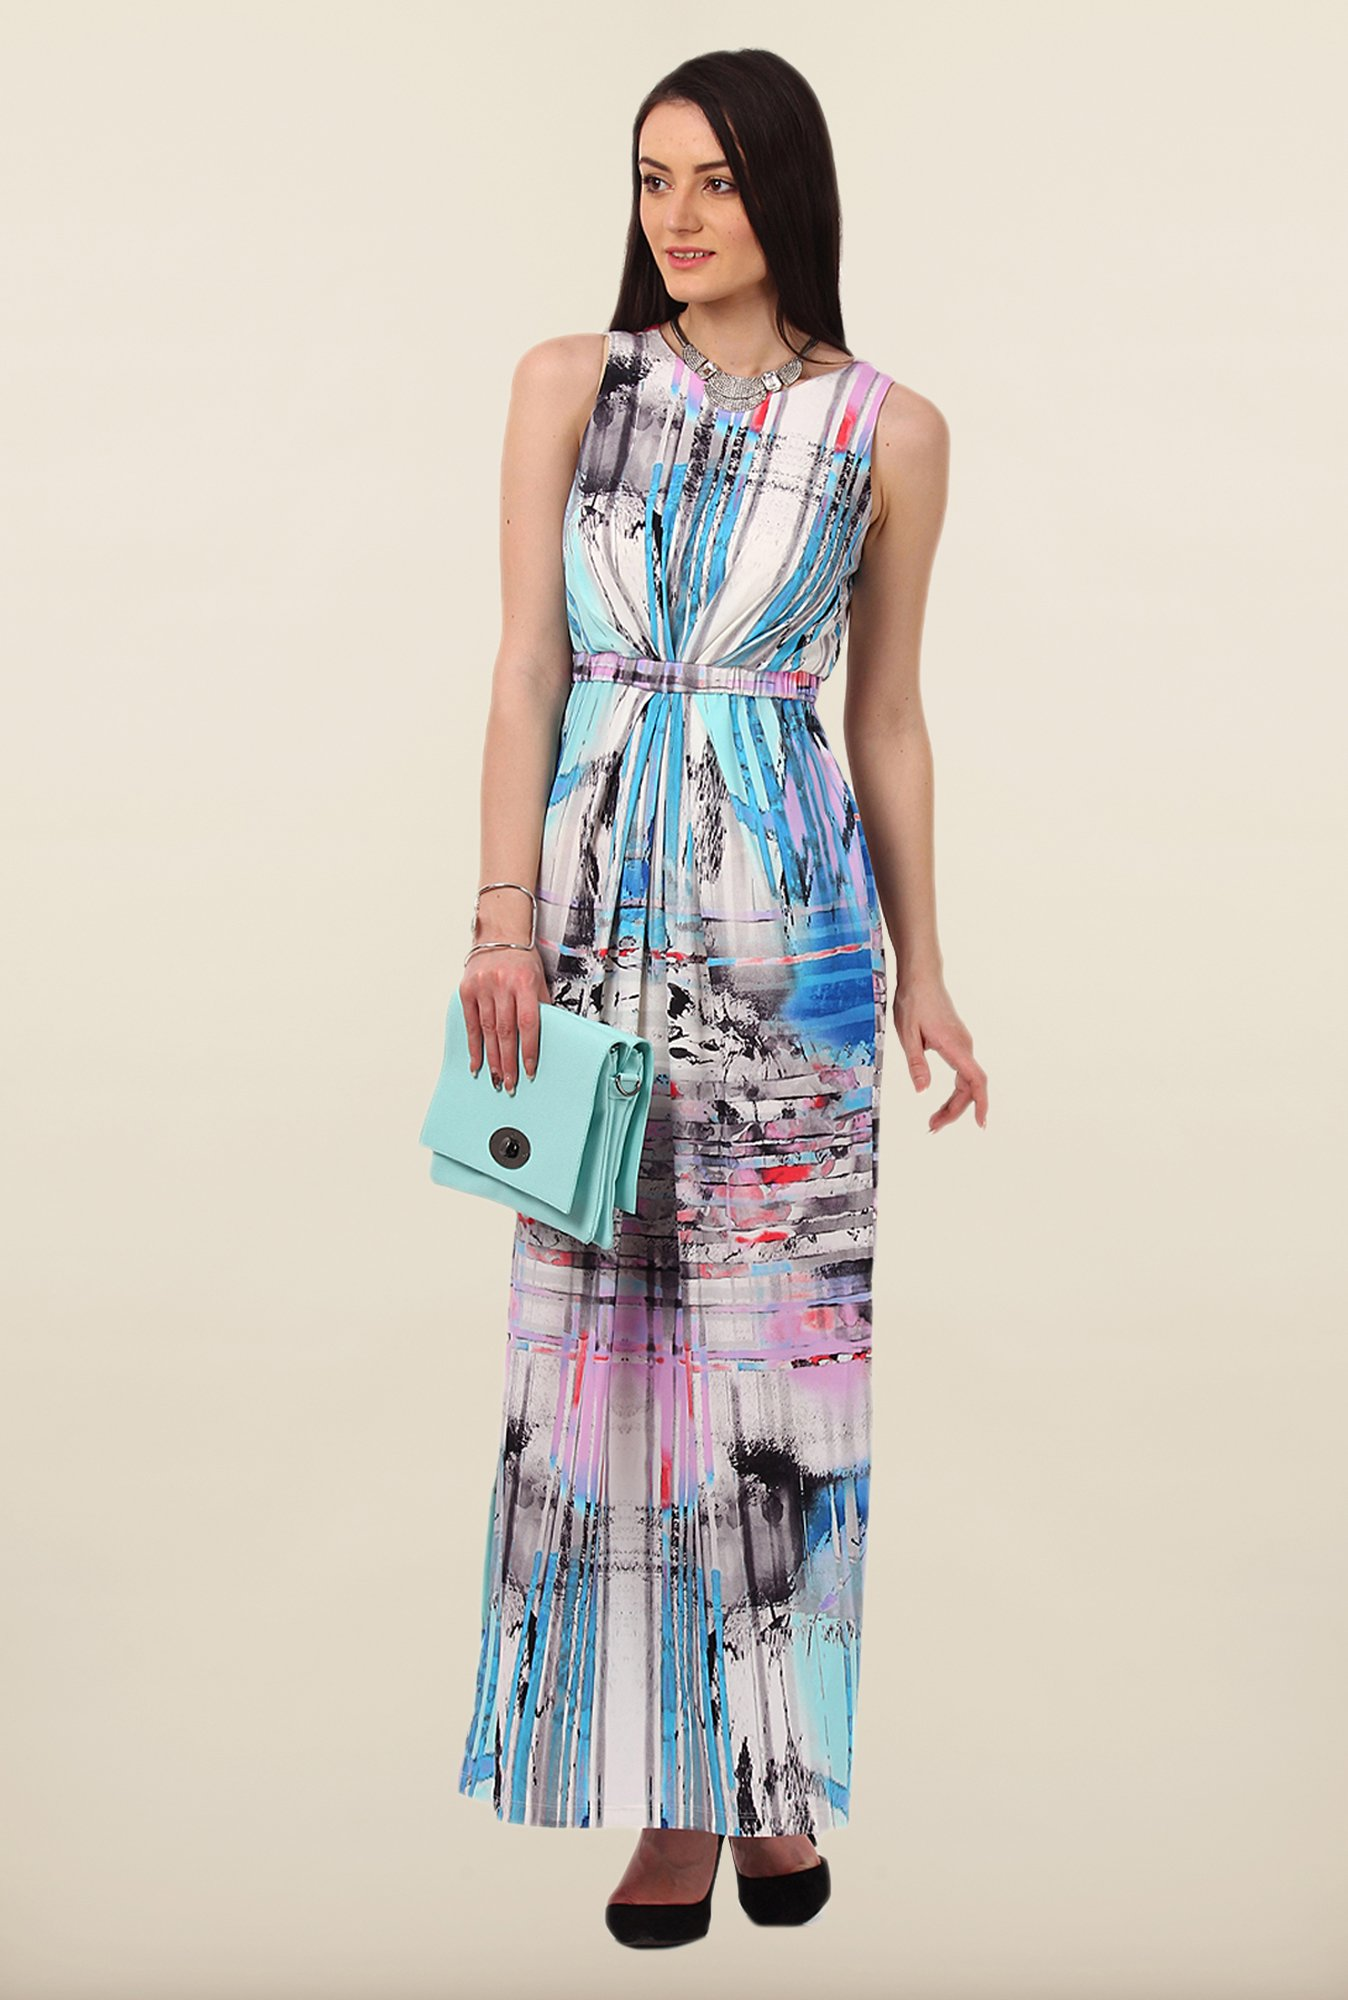 Avirate Multicolor Printed Sleeveless Casual Dress